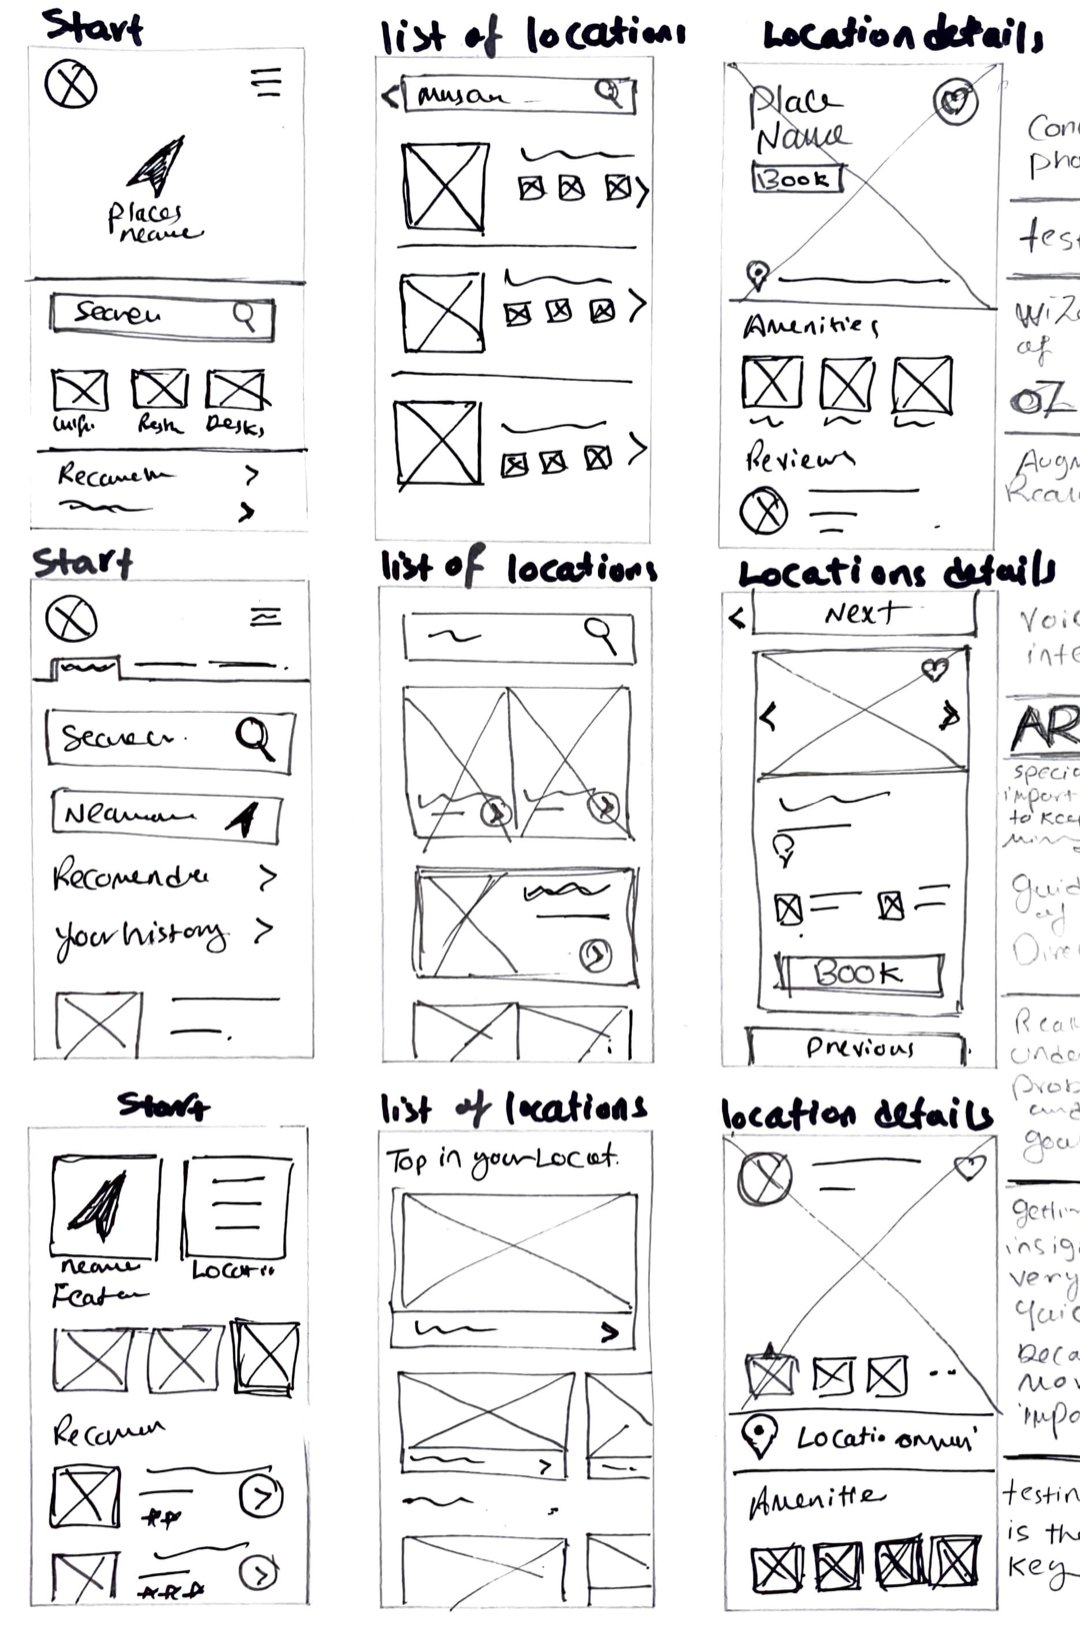 Rough sketches for Search, List and Place details screens (Crazy 8' Activity)